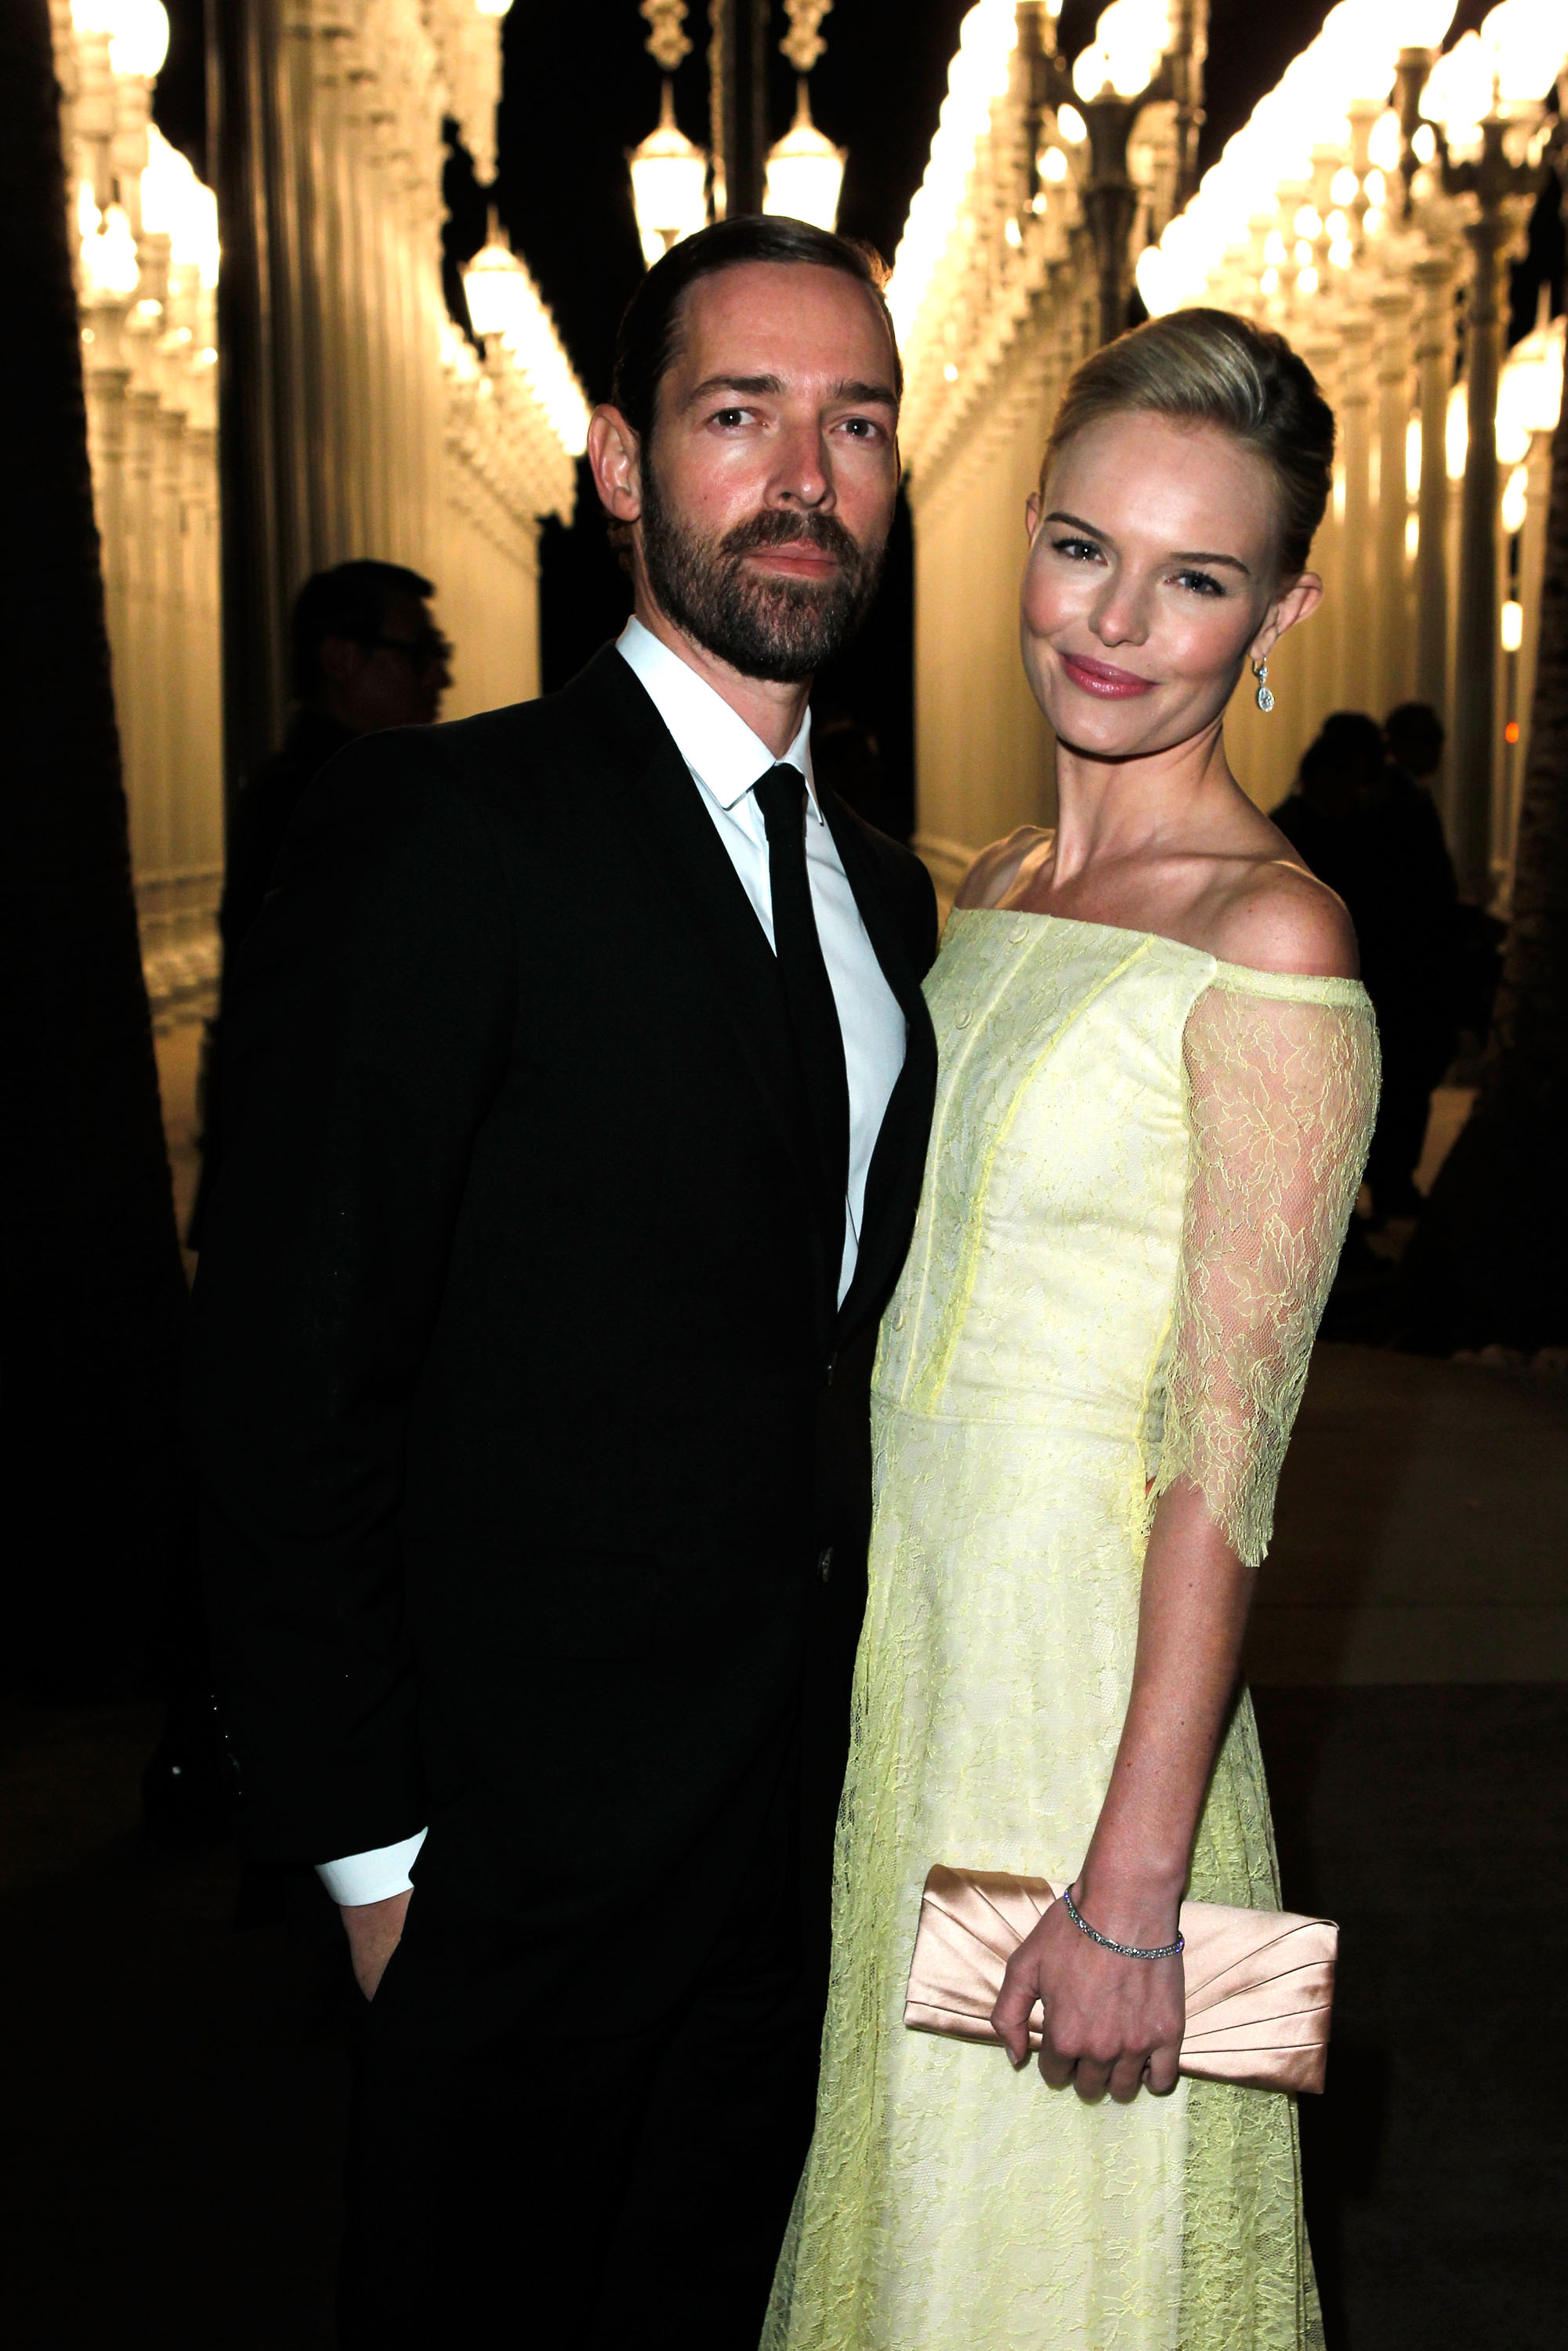 Kate Bosworth posed for a photo with Michael Polish.